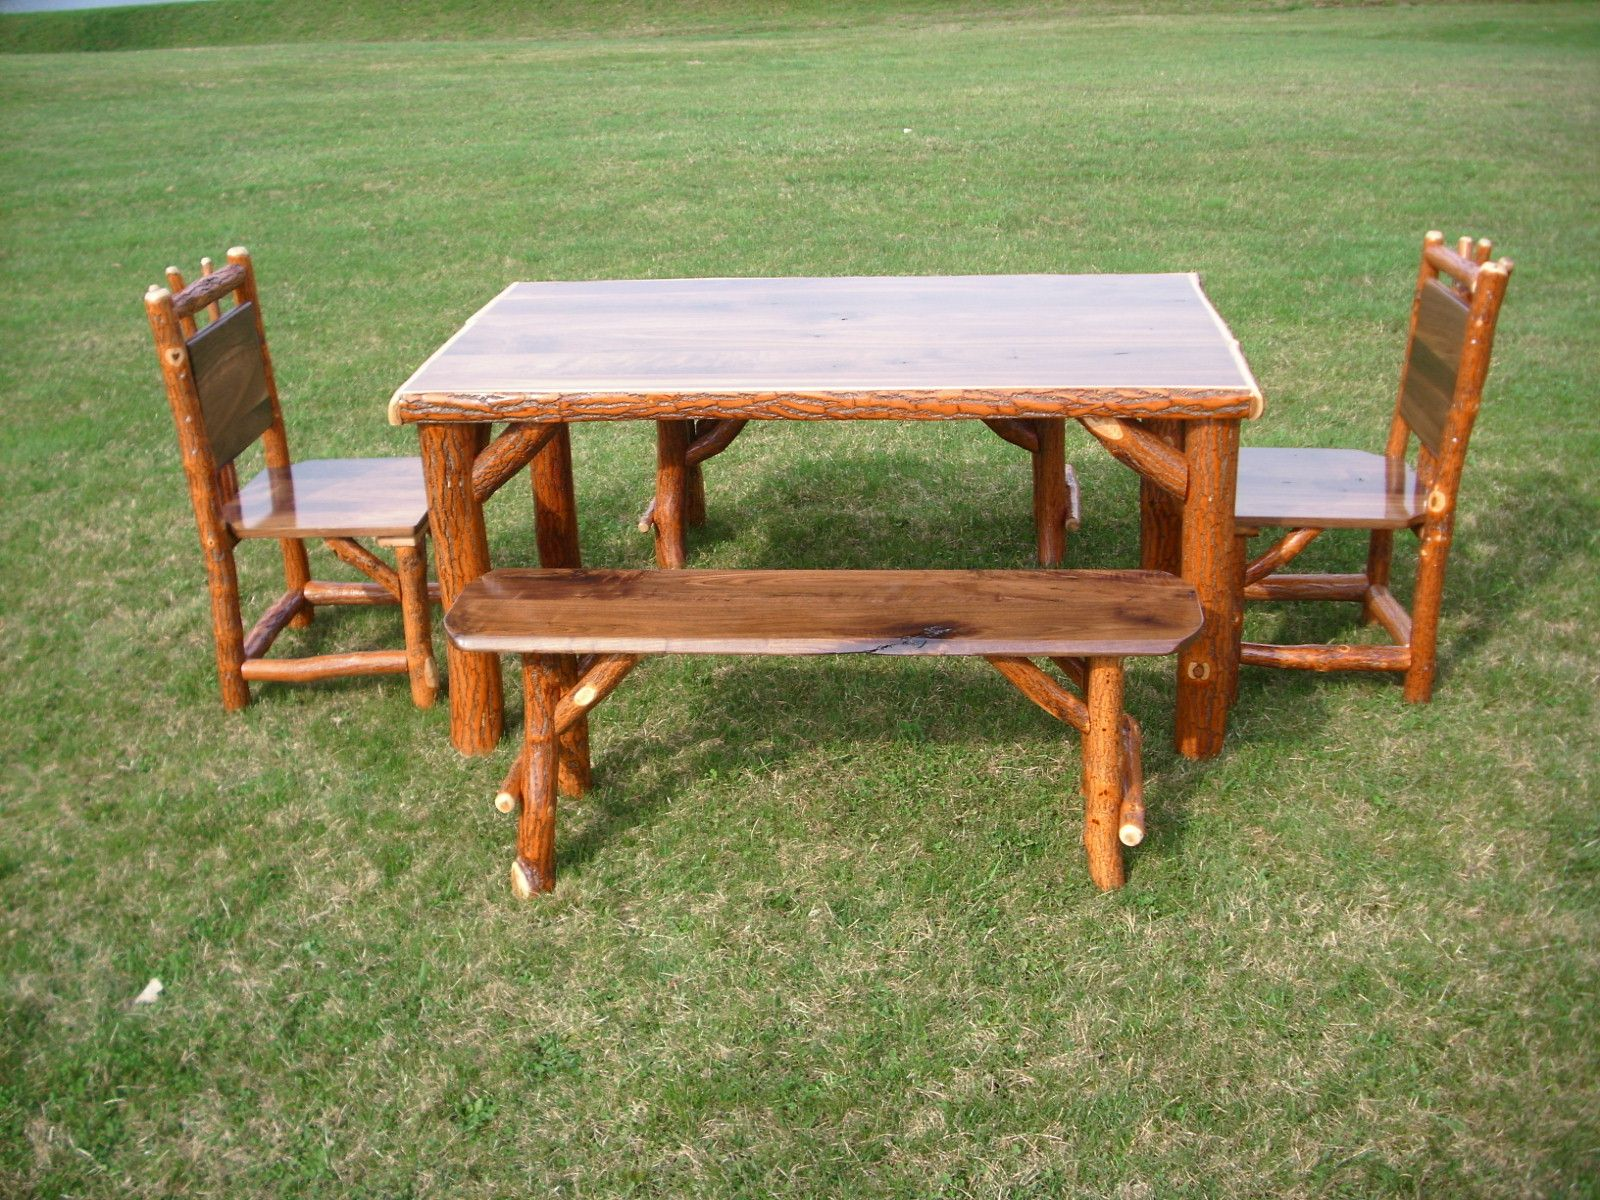 Rustic Log Sassafras Table Chairs And Benches Set With